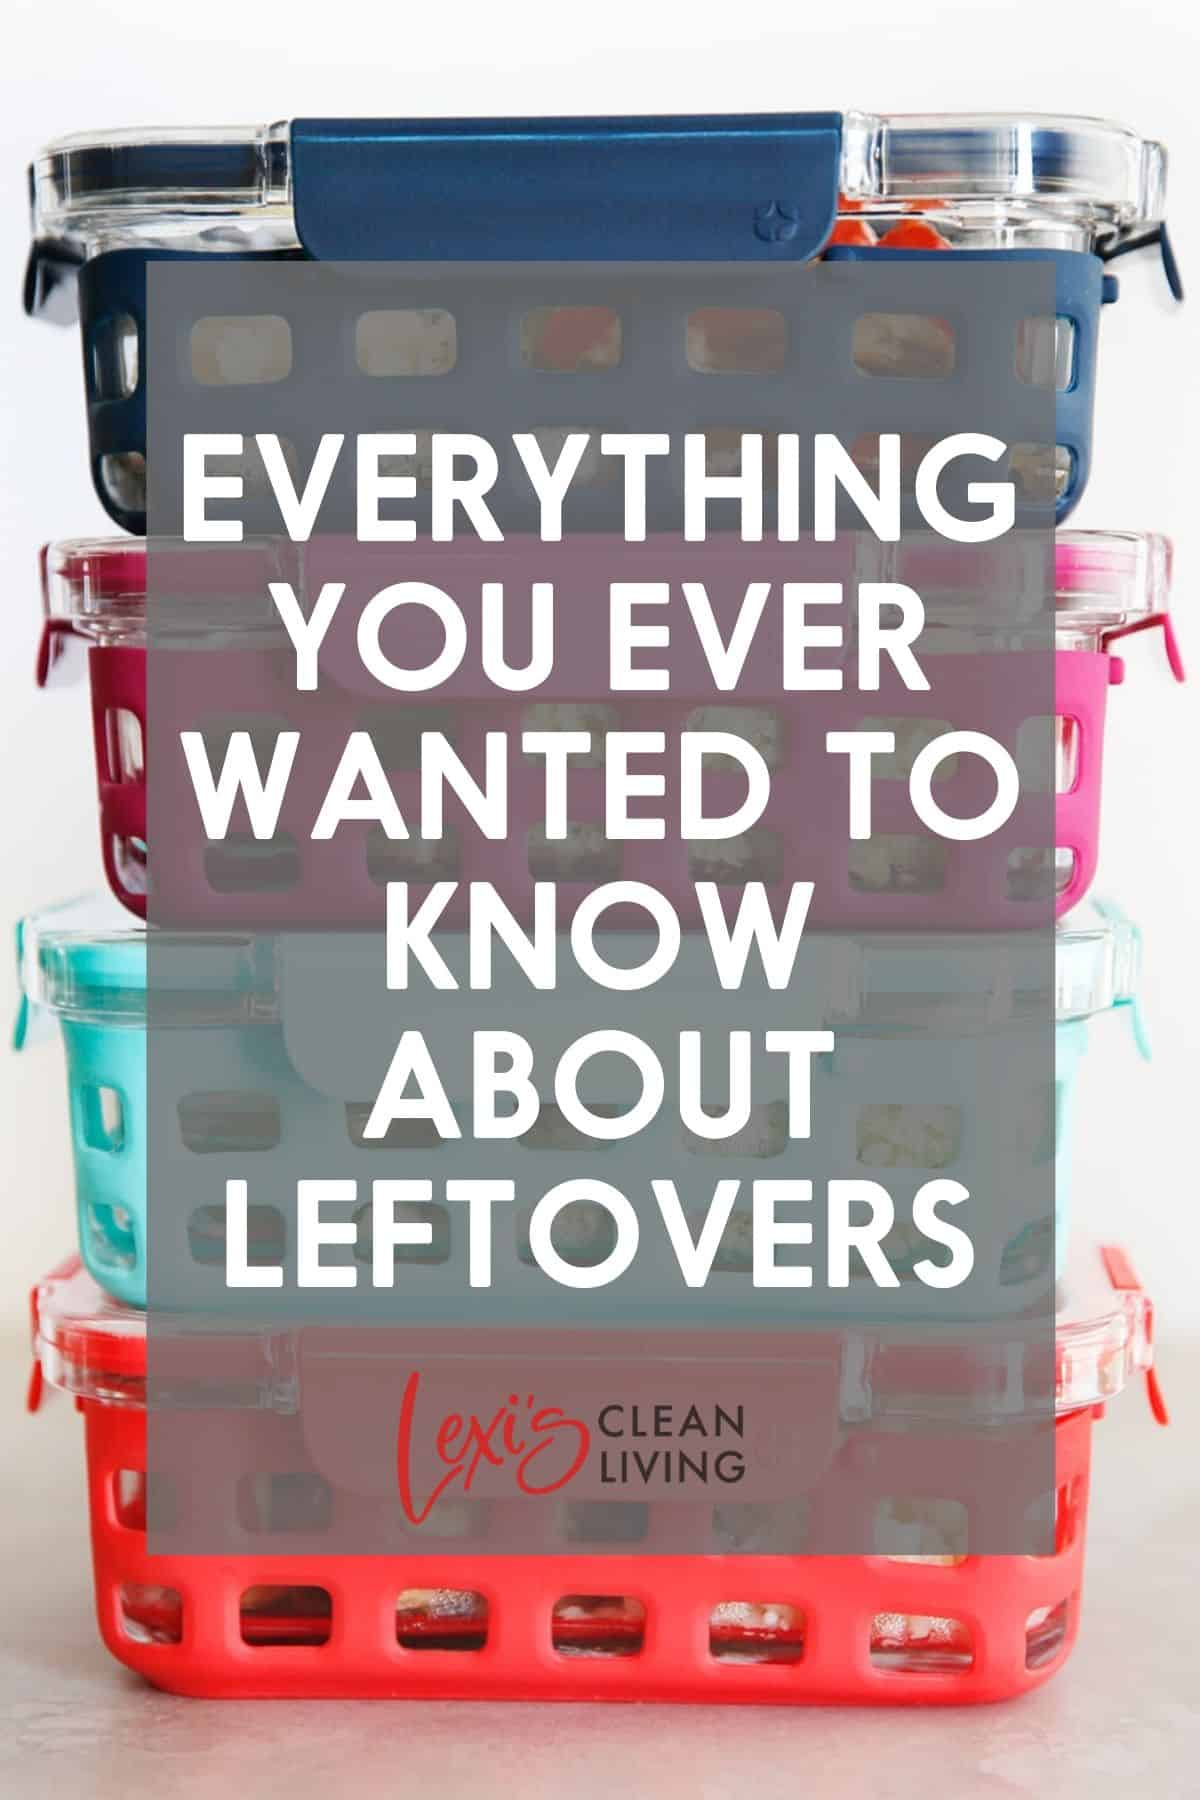 Meal prep containers stacked on top of one another with a text layover that says everything you ever wanted to know about leftovers.